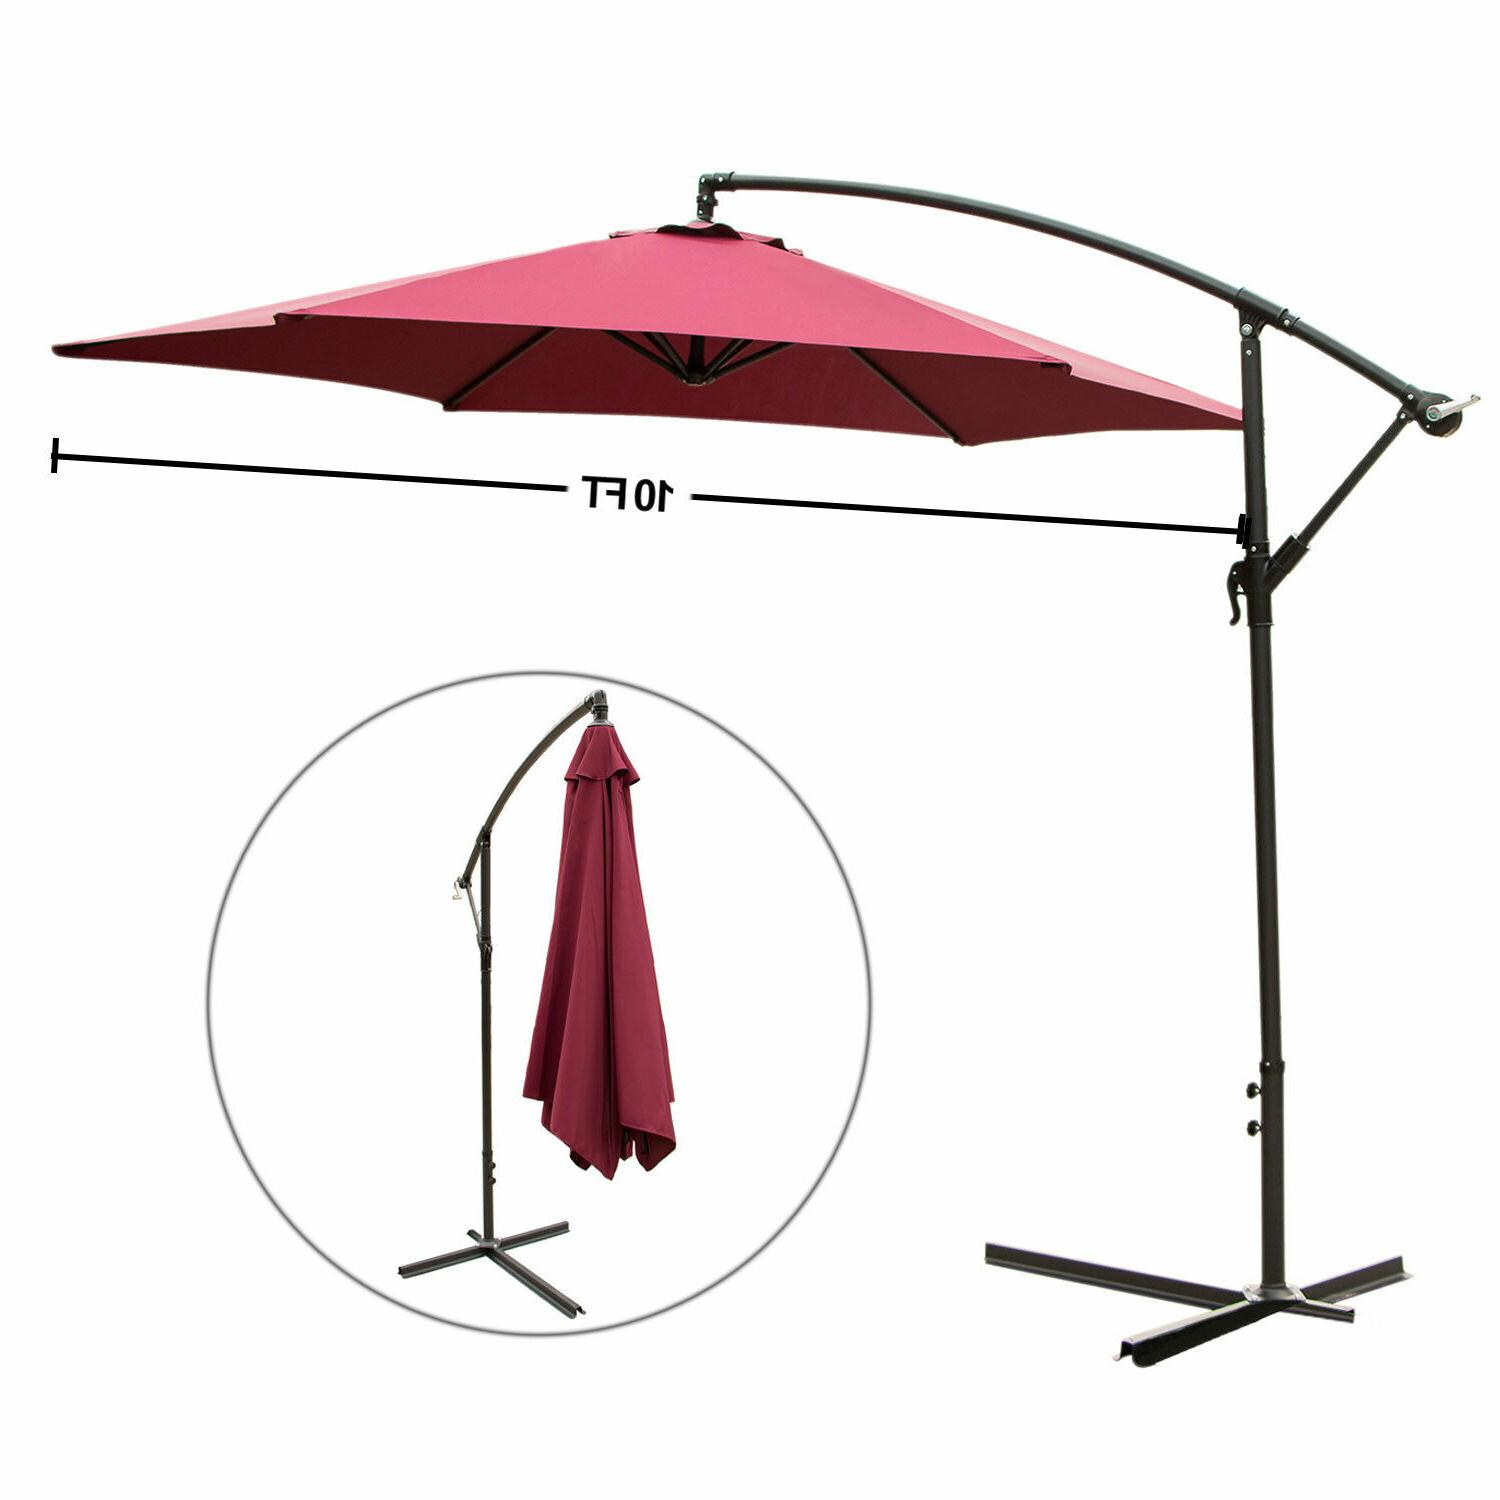 10FT Patio Umbrella Shade Red